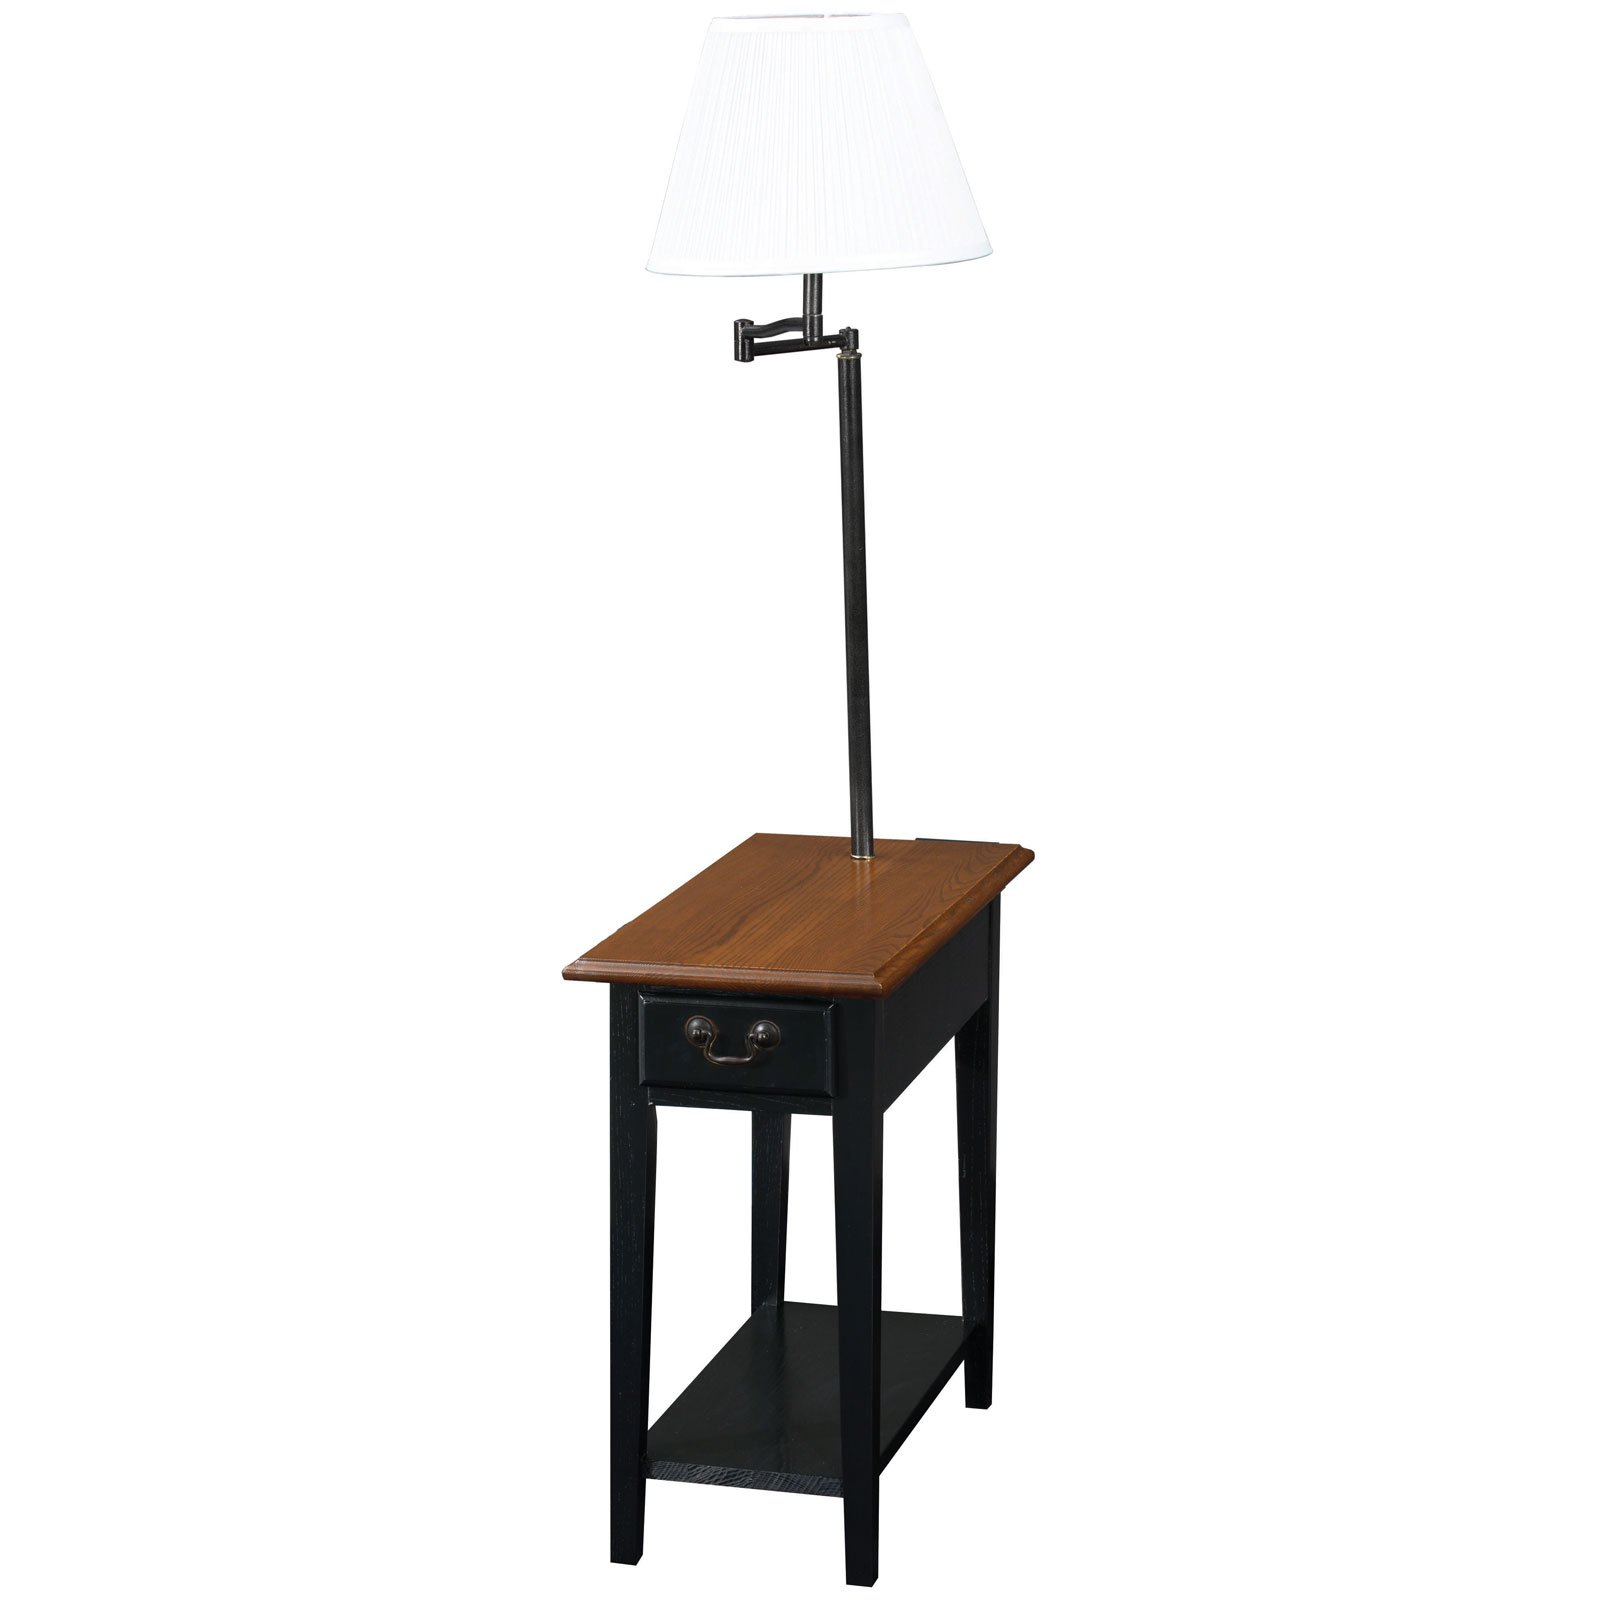 accent lamps for bedroom the perfect favorite black end table with leick home chairside lamp multiple colors attached glass front mini fridge ashley furniture red sofa washable